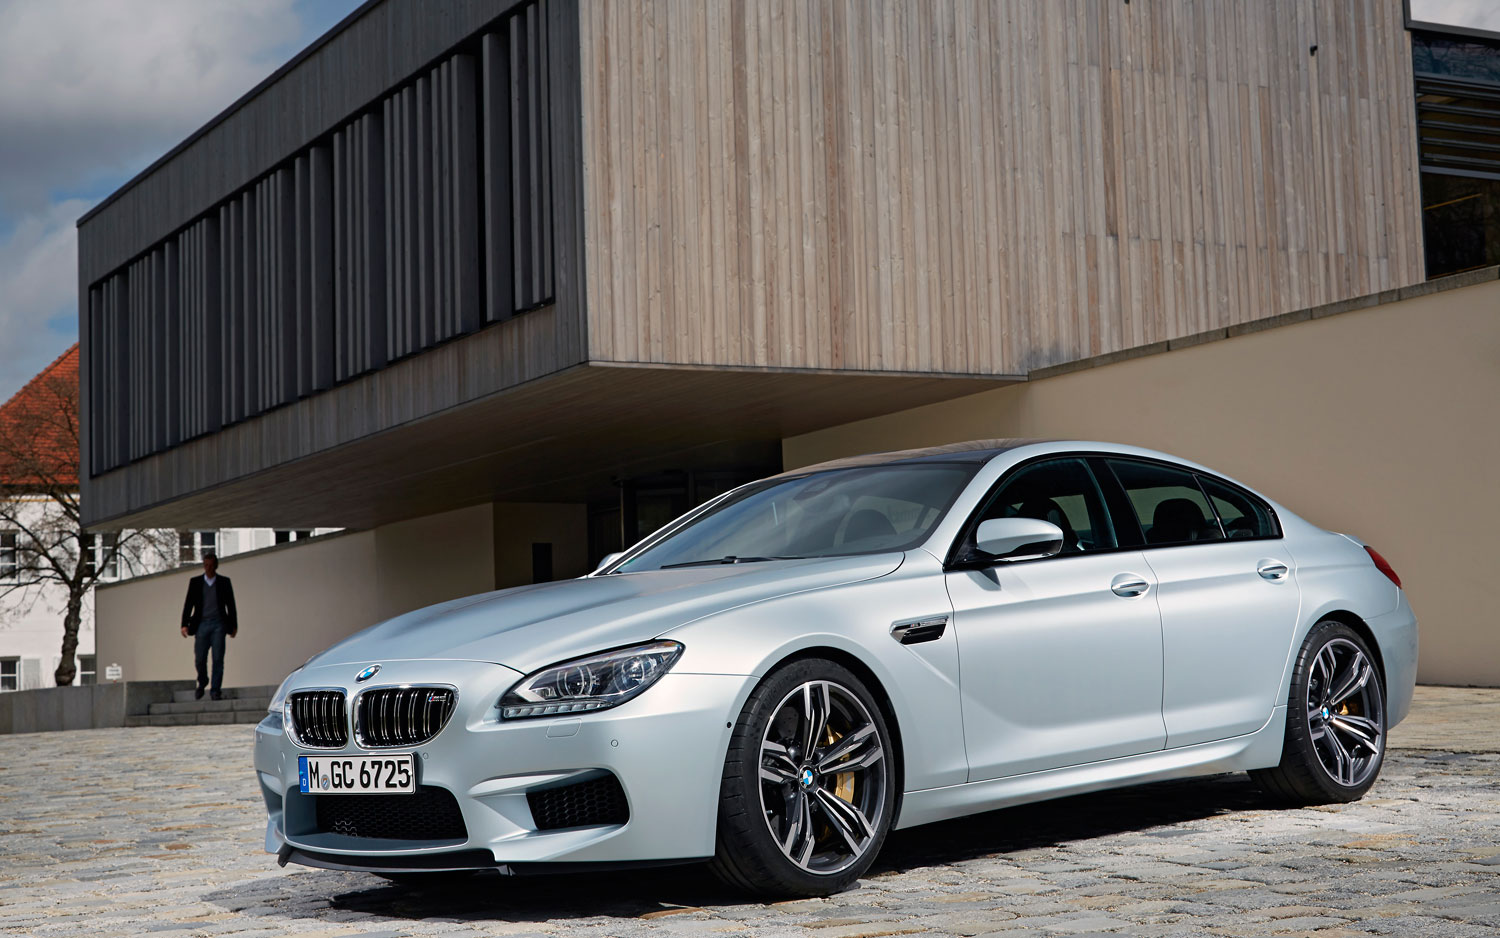 Coupe Series bmw gran coupe m6 2014 BMW M6 Gran Coupe First Drive - Automobile Magazine